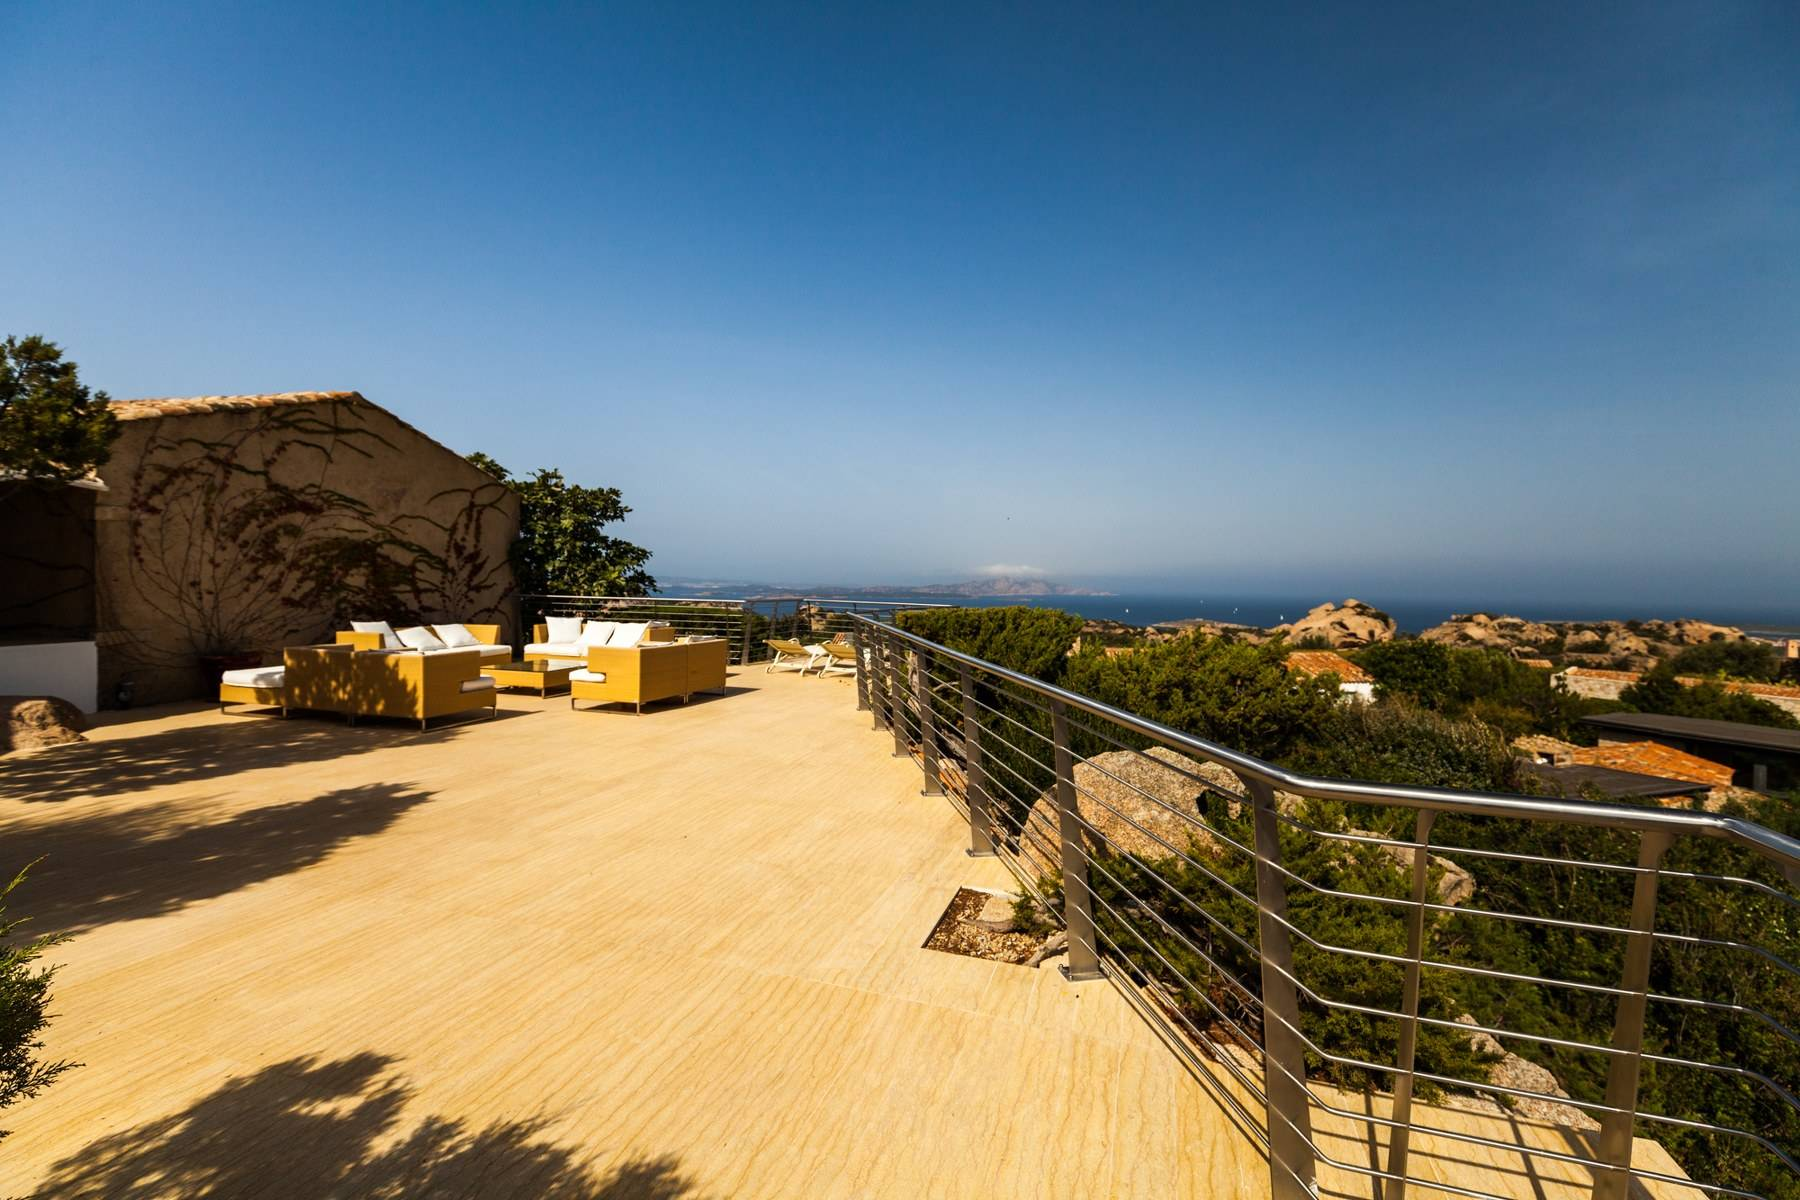 Exclusive property with stunning sea views overlooking the Costa Smeralda - 29